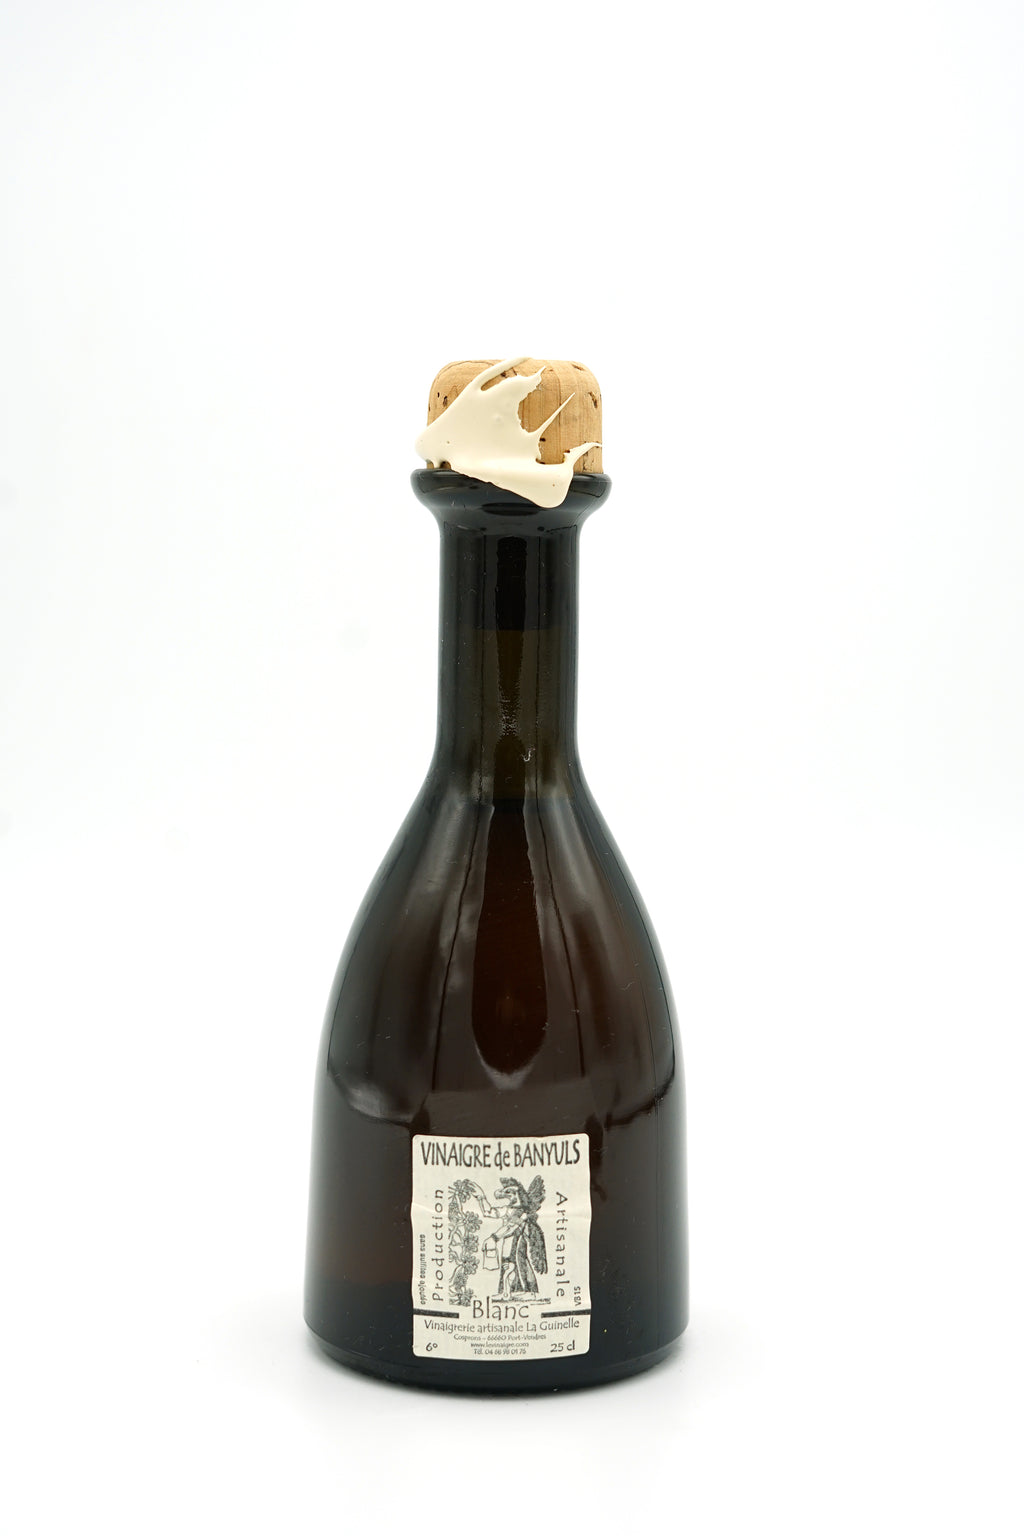 Banyuls White Vinegar 25cl - La Guinelle - SOLD OUT